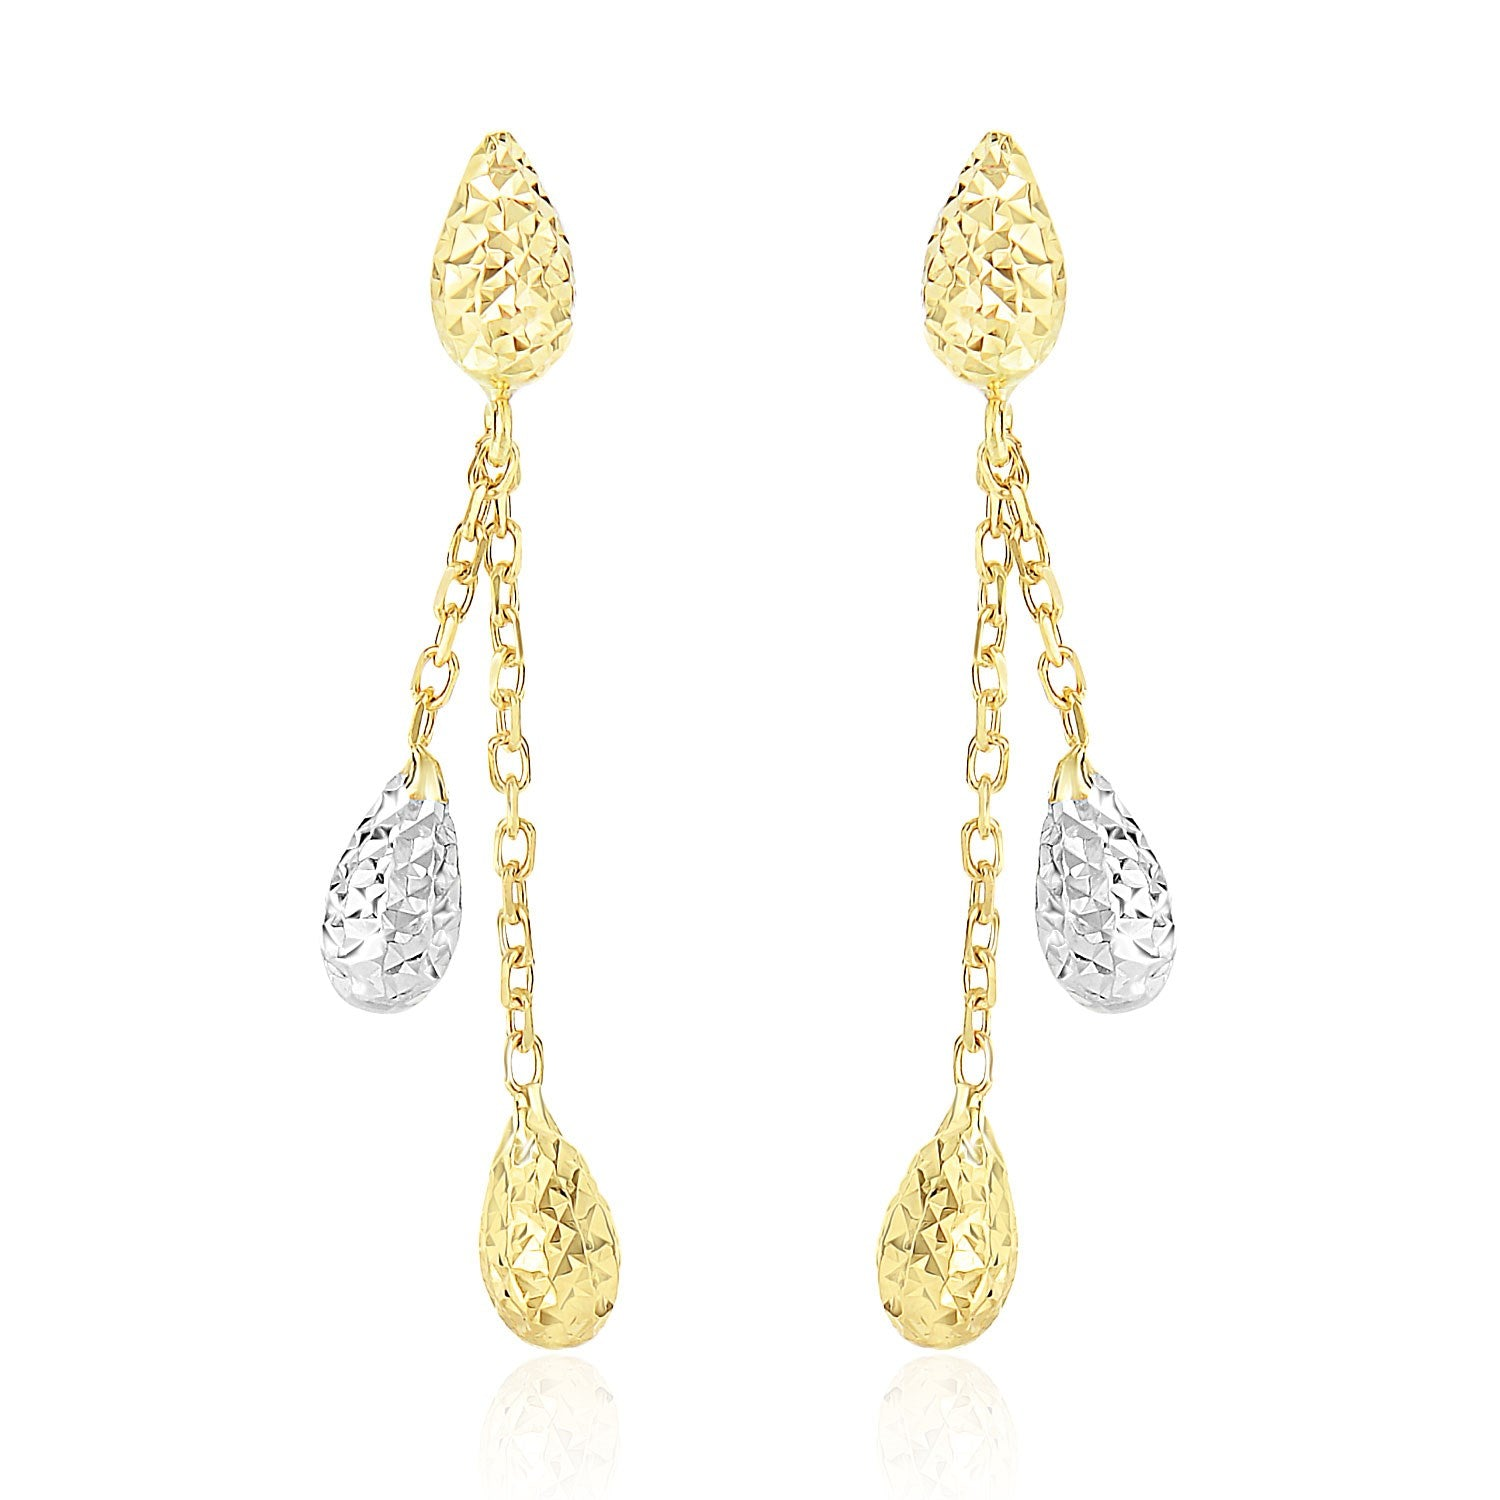 14K Two-Tone Gold Double Row Chain Earrings with Diamond Cut Teardrops